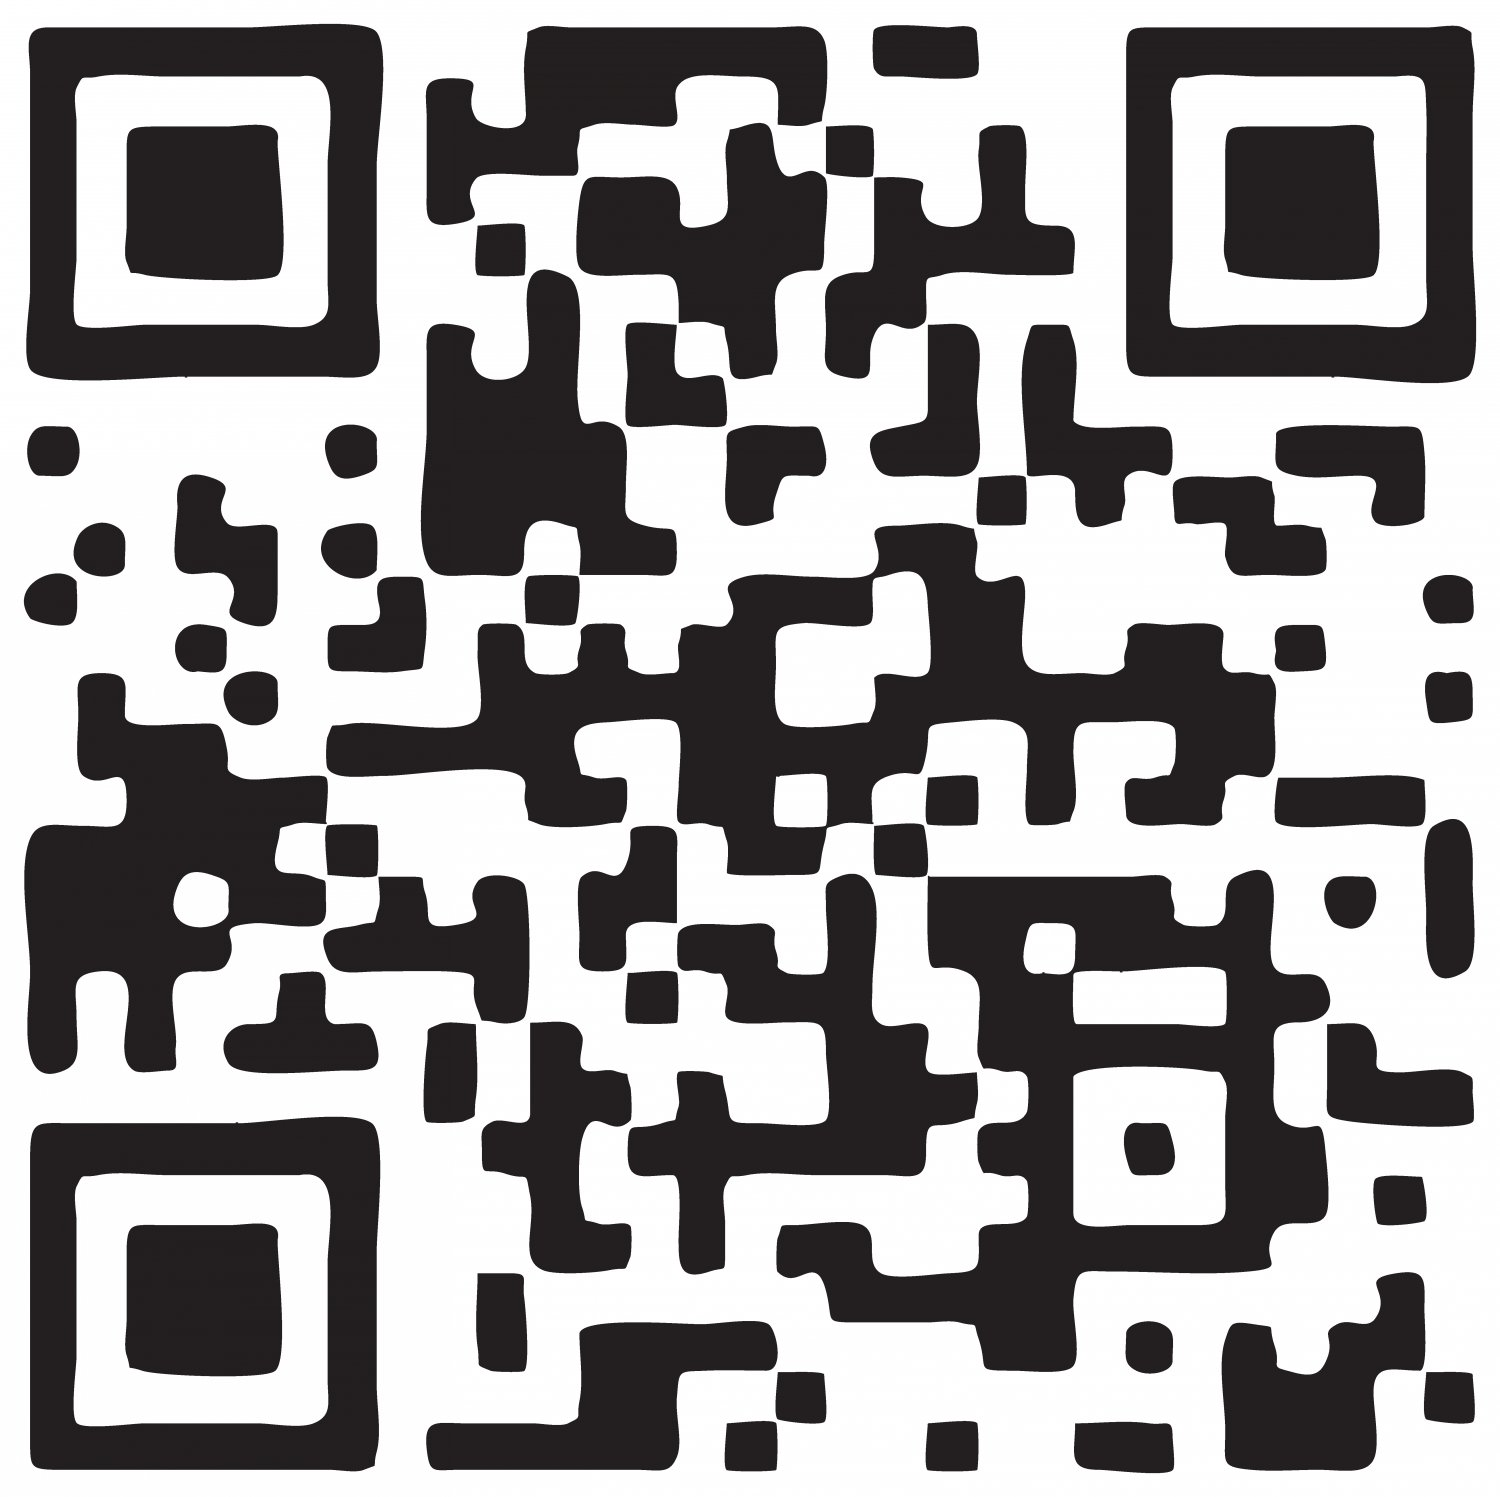 - Never leave your QR code out in the sun on a hot day. -  - Art and the Zen of QR Codes - QaRt - making art from QR codes. - - art  - photography - by Tony Karp